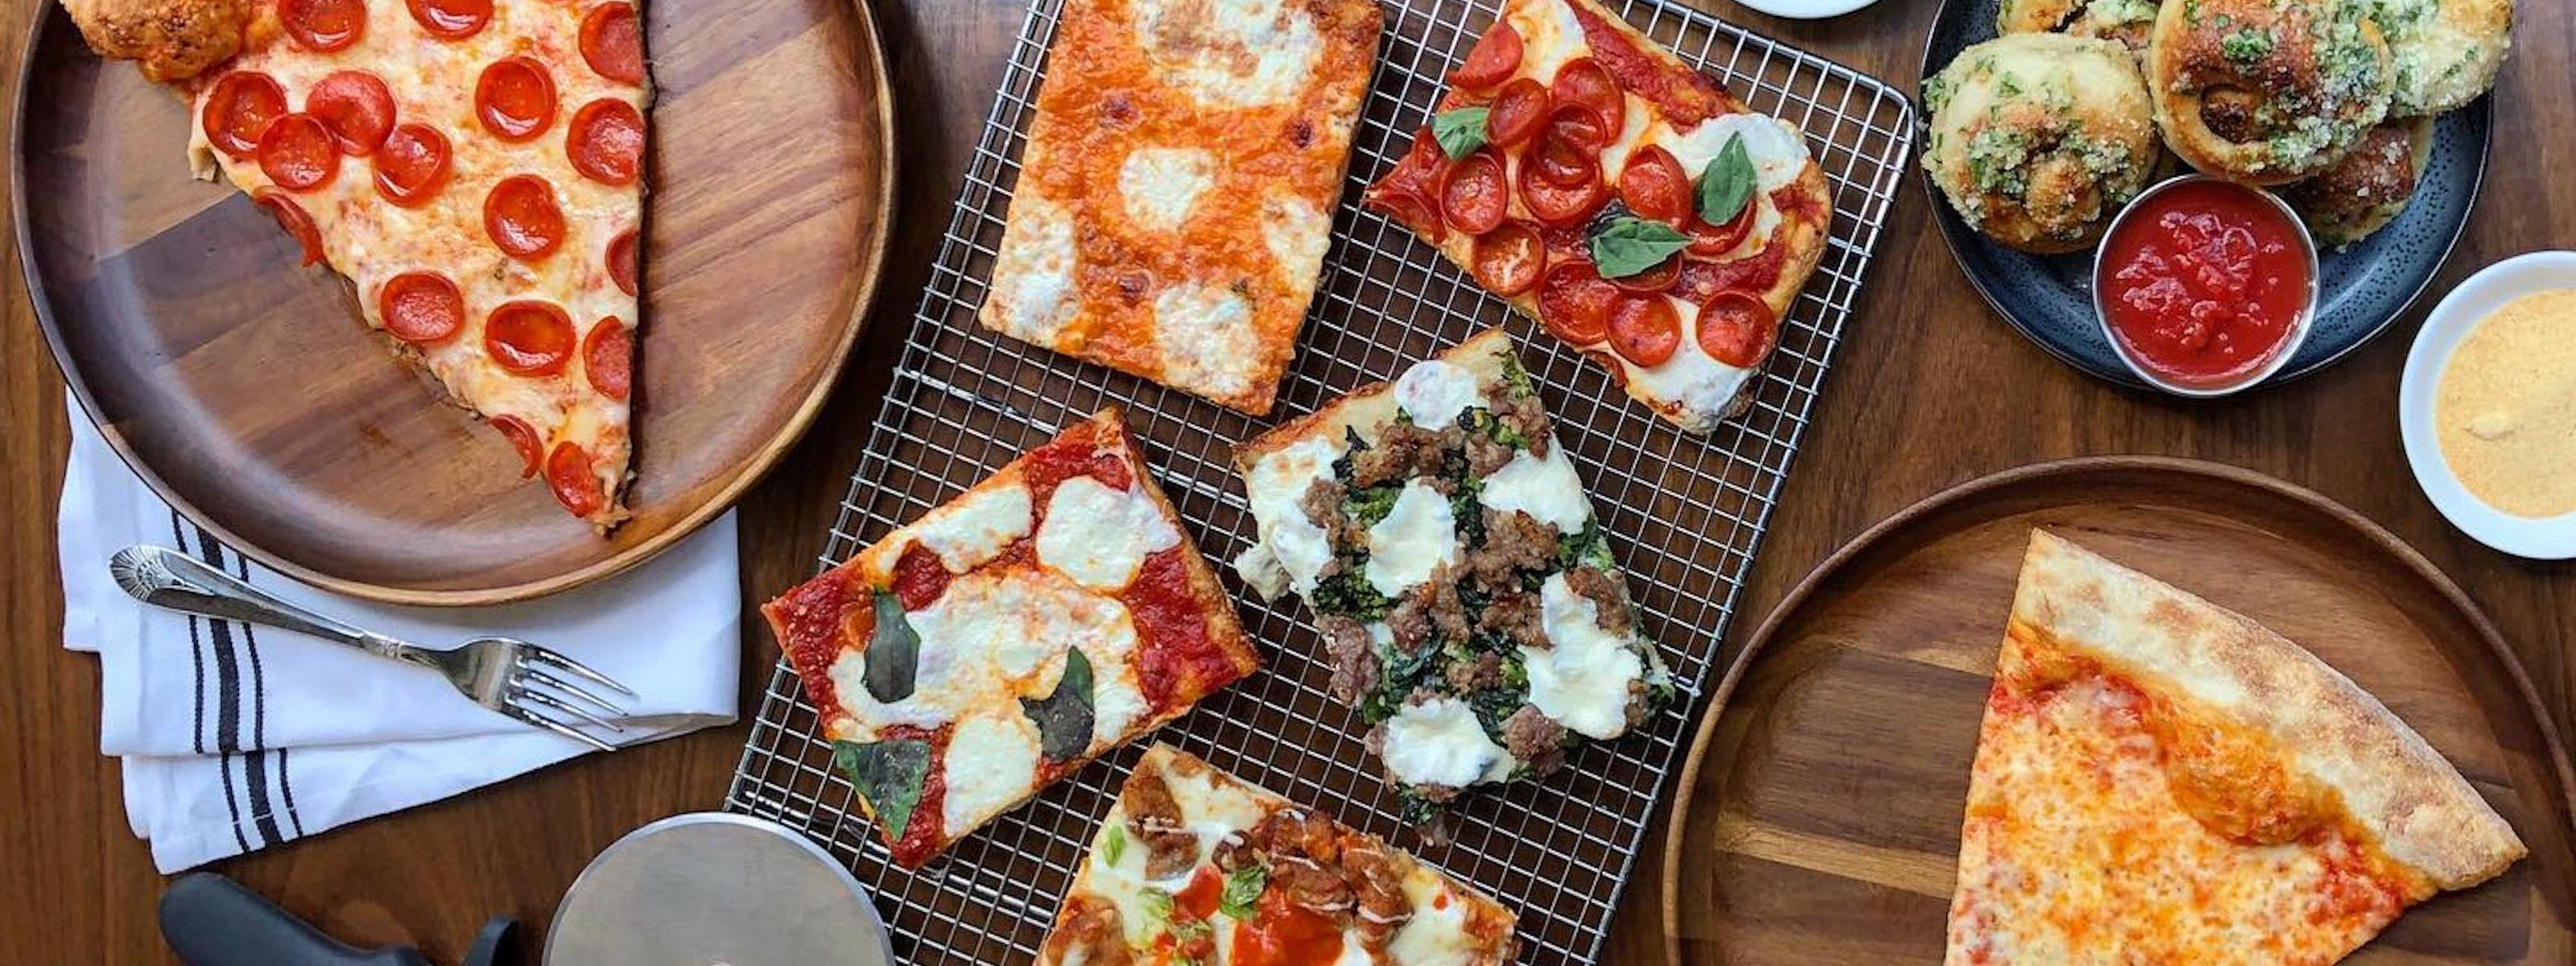 Pizza by Lucille's - Harlem - New York - The Infatuation